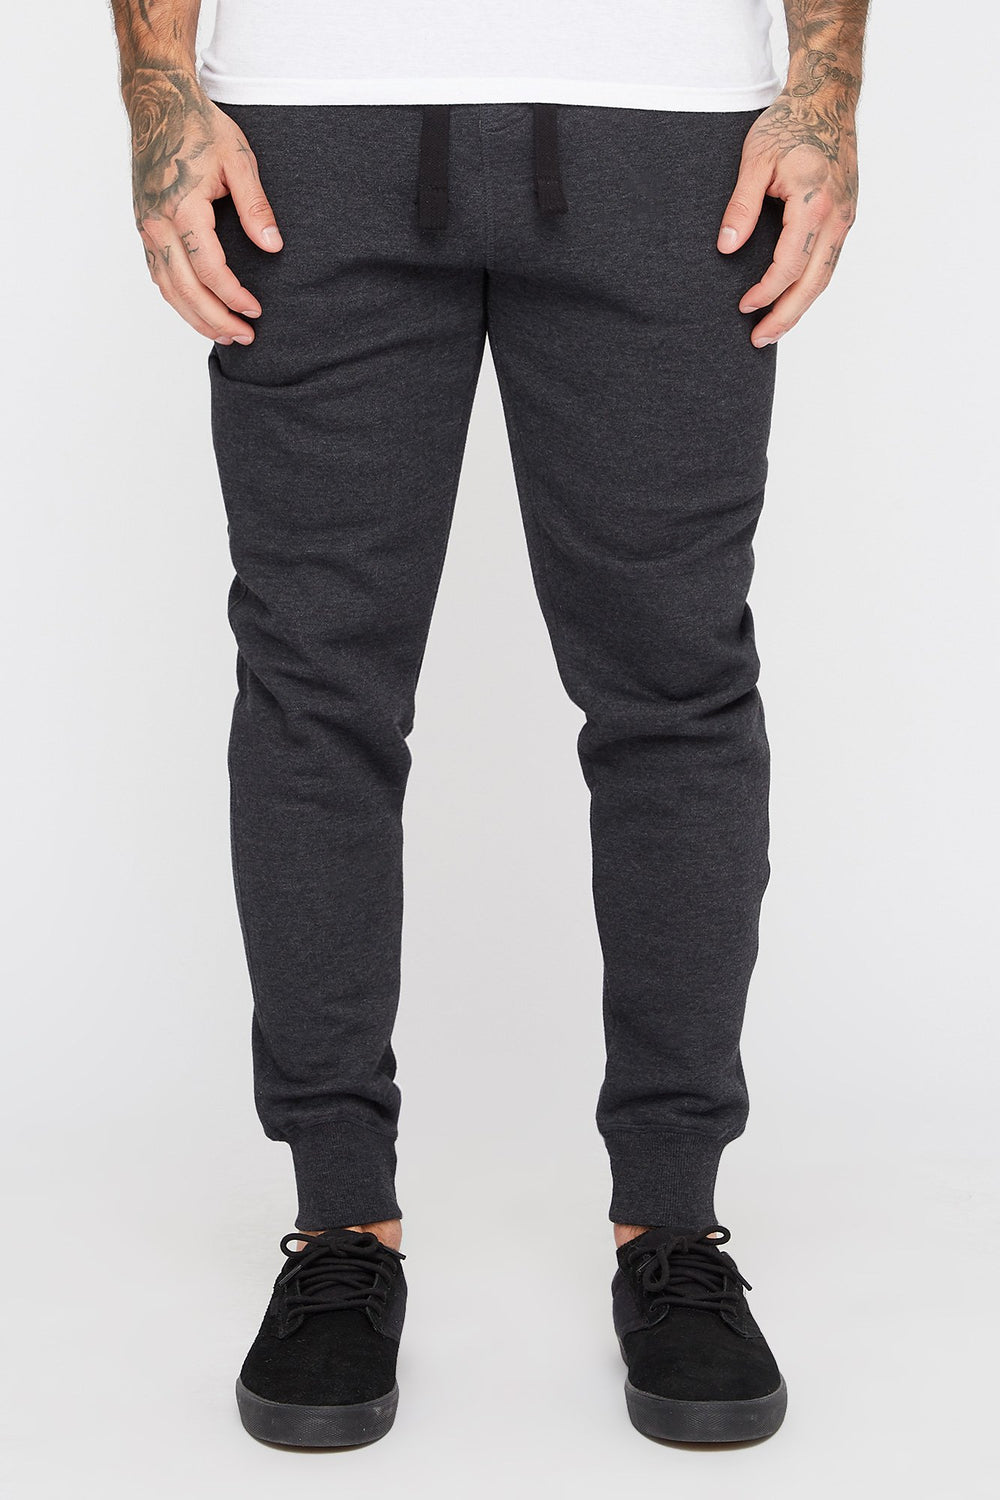 West49 Mens Solid Zip-Up Jogger Charcoal